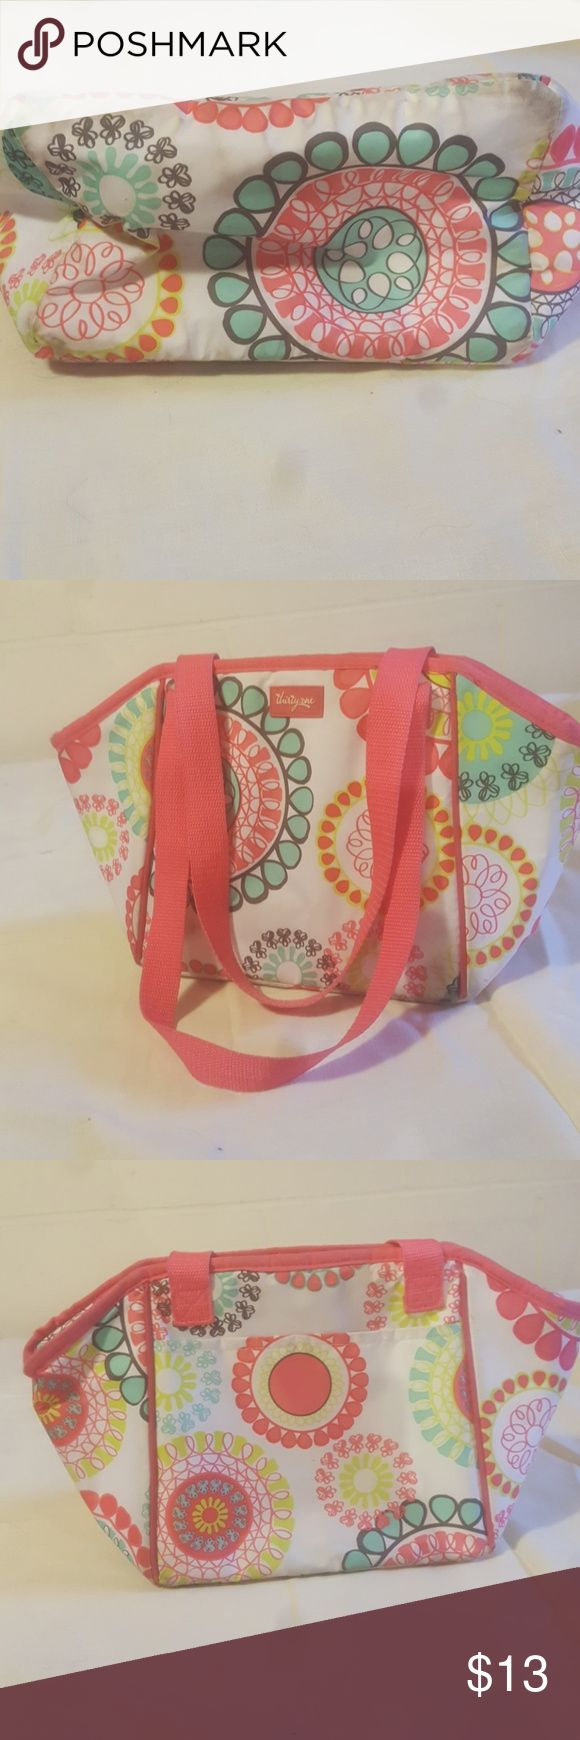 Thirty-one insulated lunch box Used in fair condition thirty one lunch box. Great for working 12 hour days and your food still being cold😀 thirty-one Bags